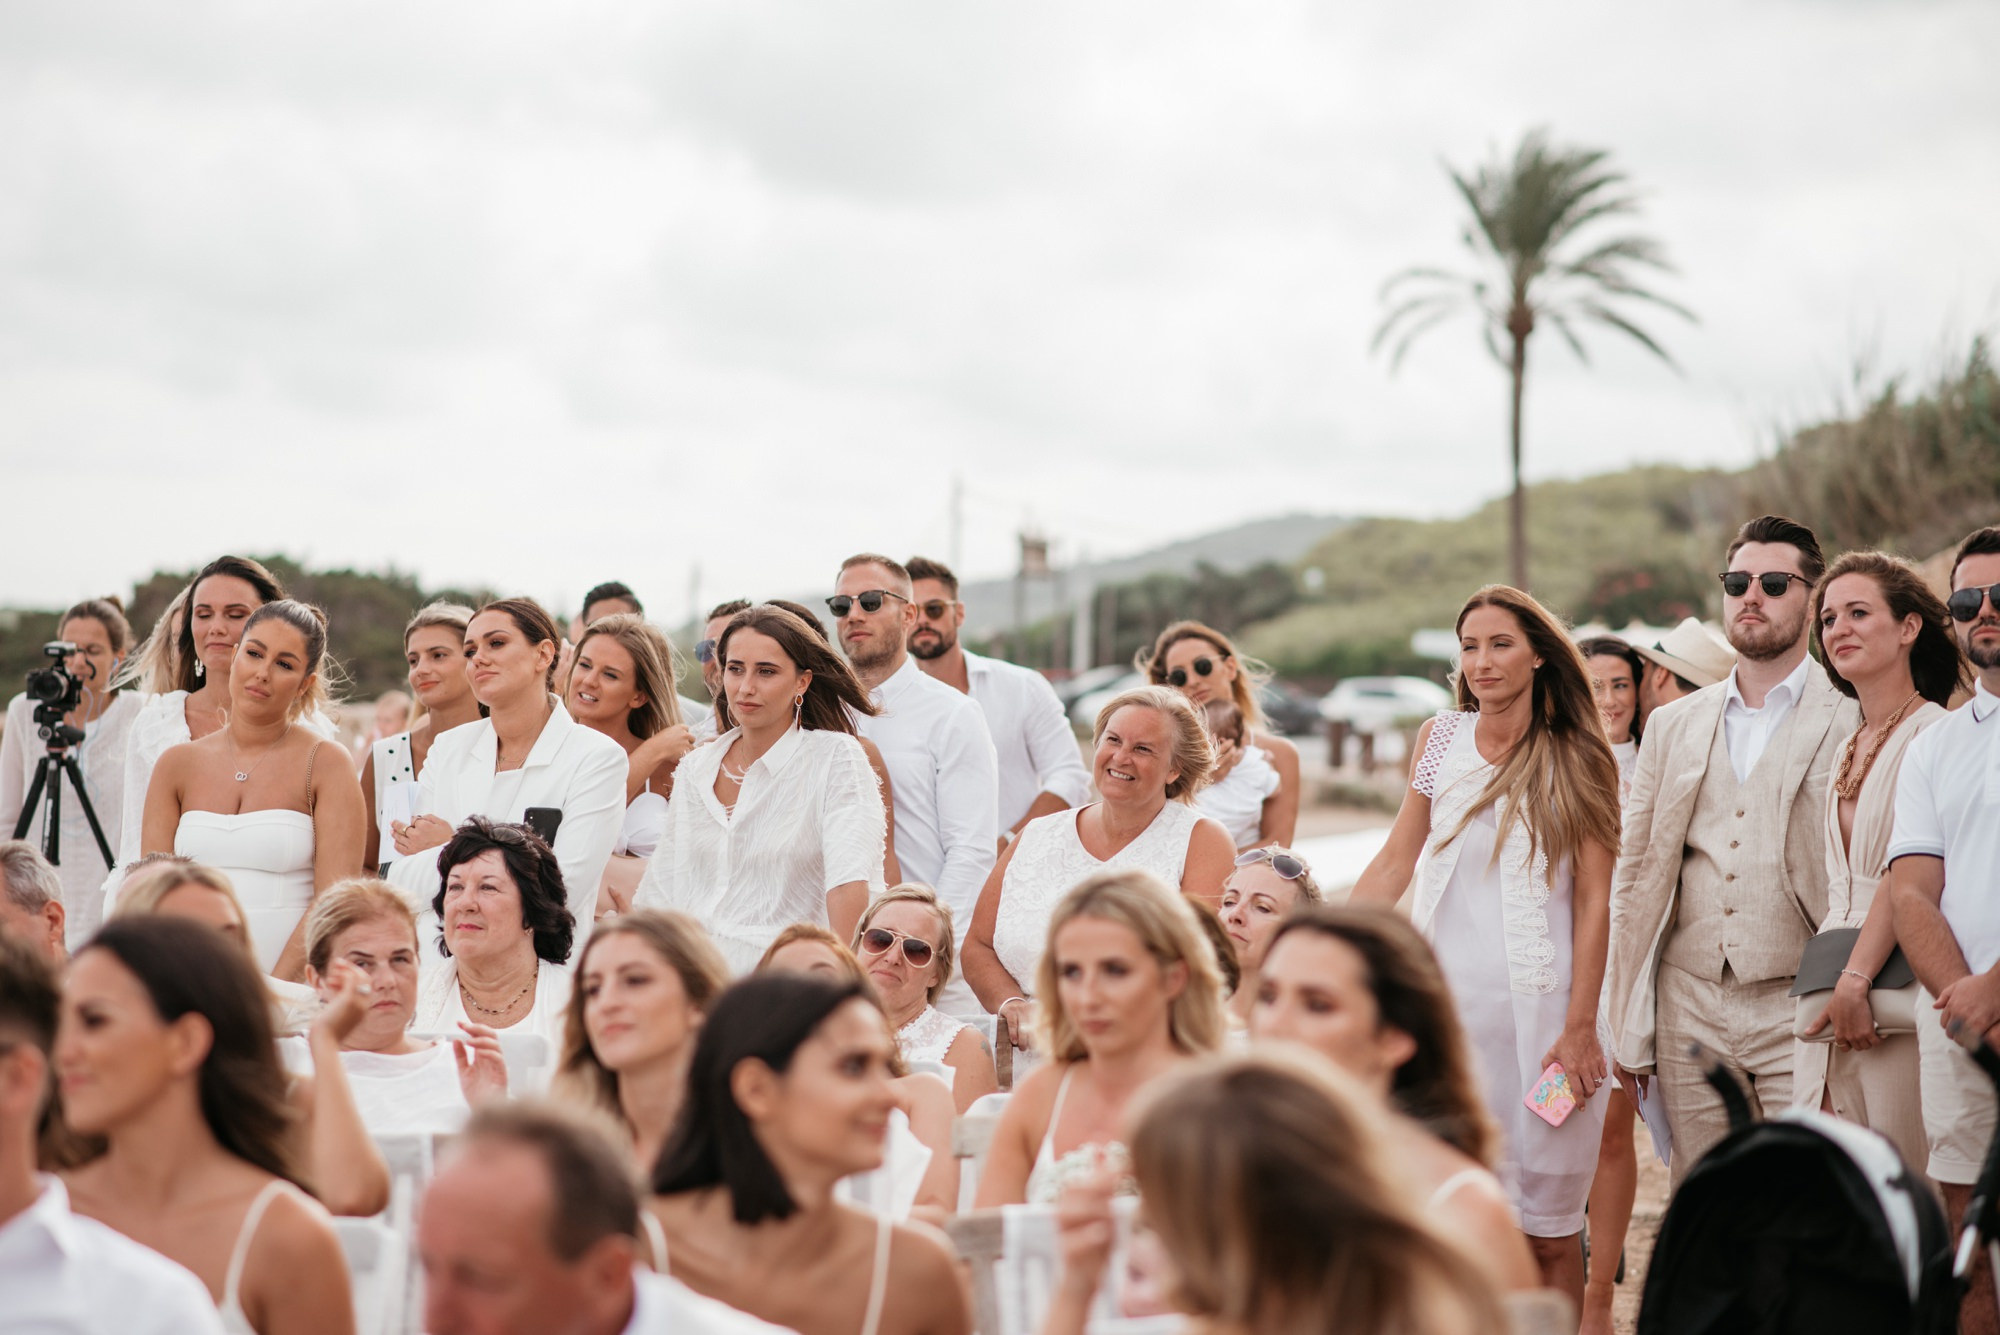 natural wedding photo destination la escollera ibiza 0061 1